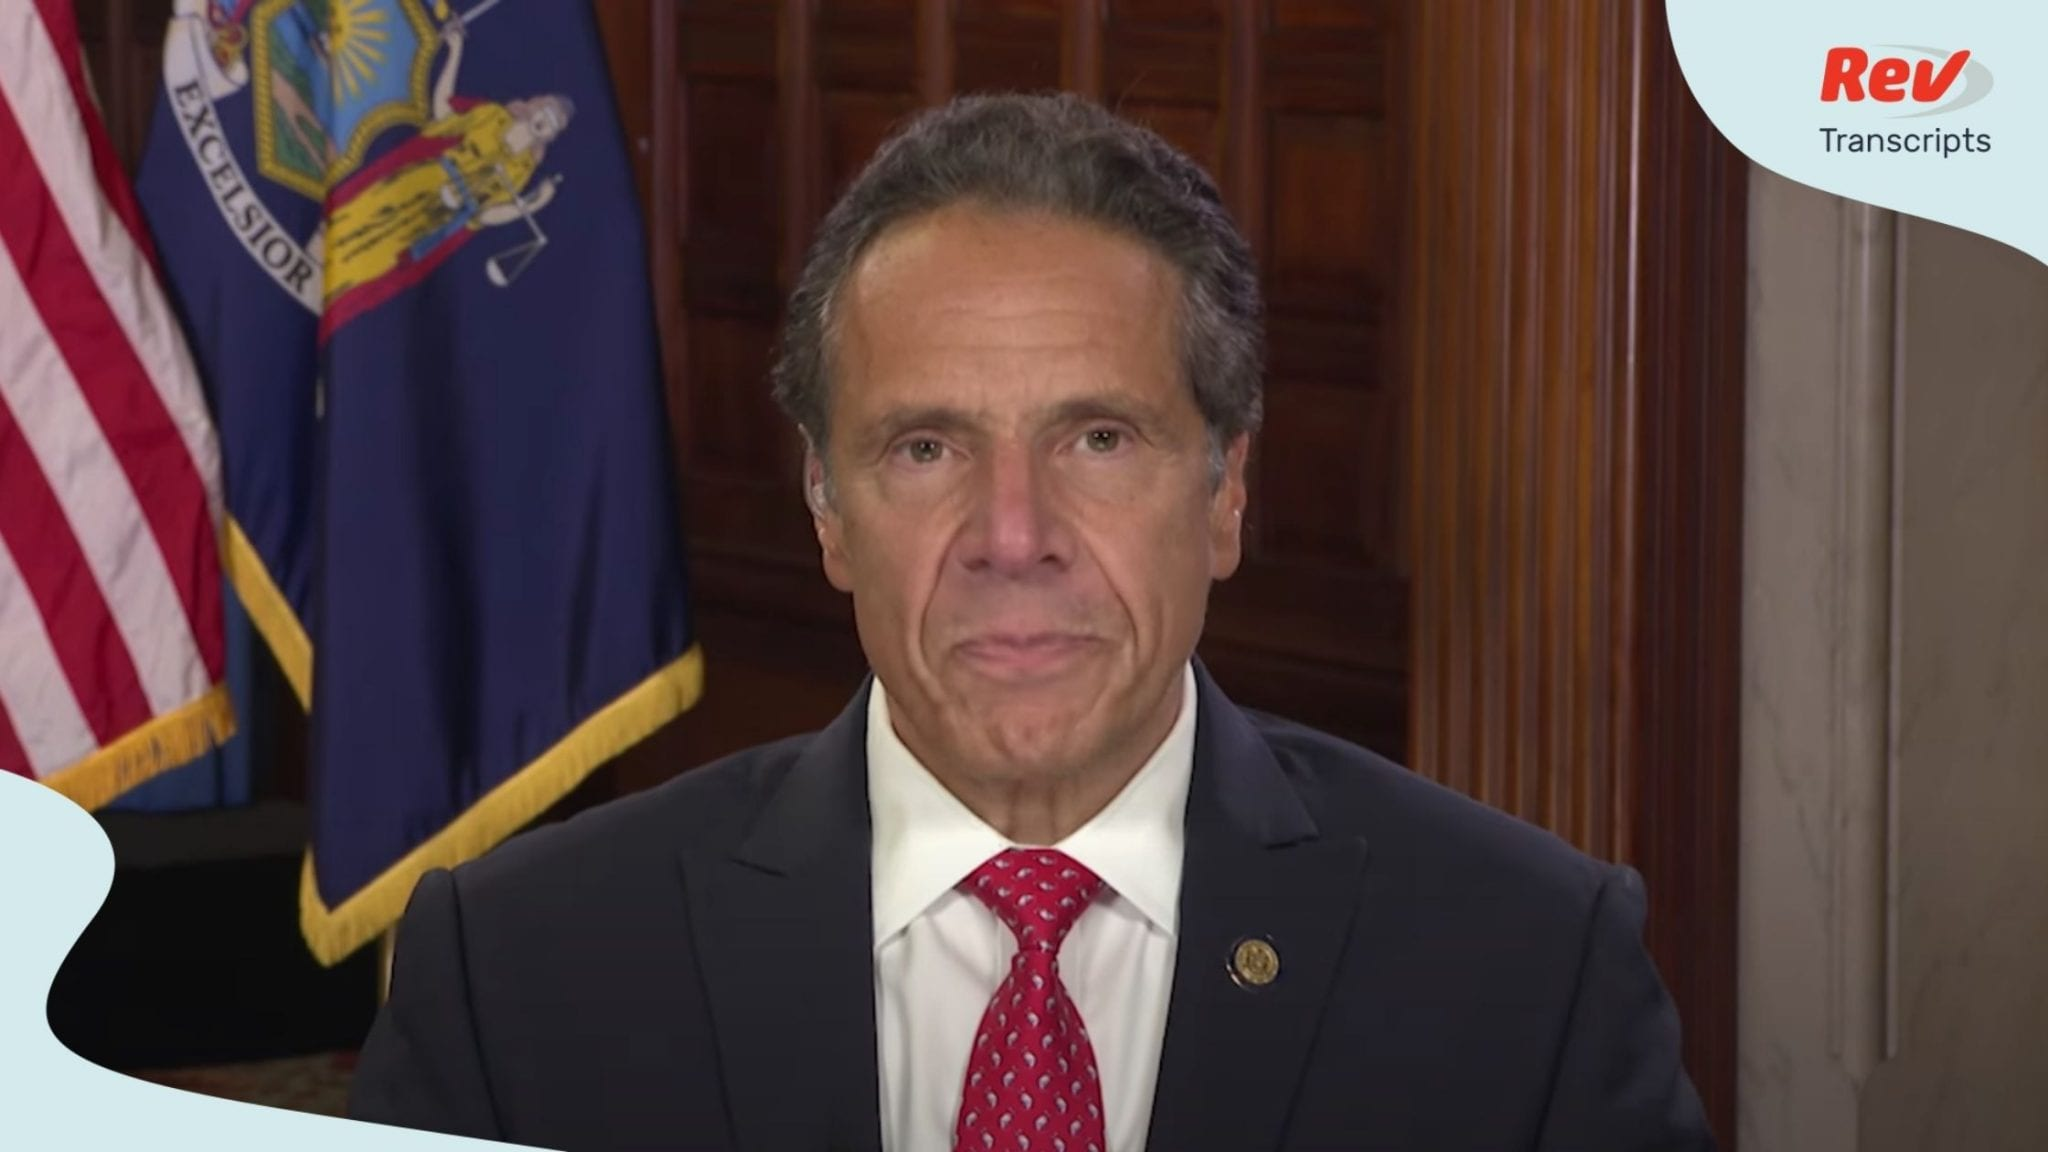 Andrew Cuomo Remarks National Governors Association Transcript August 5